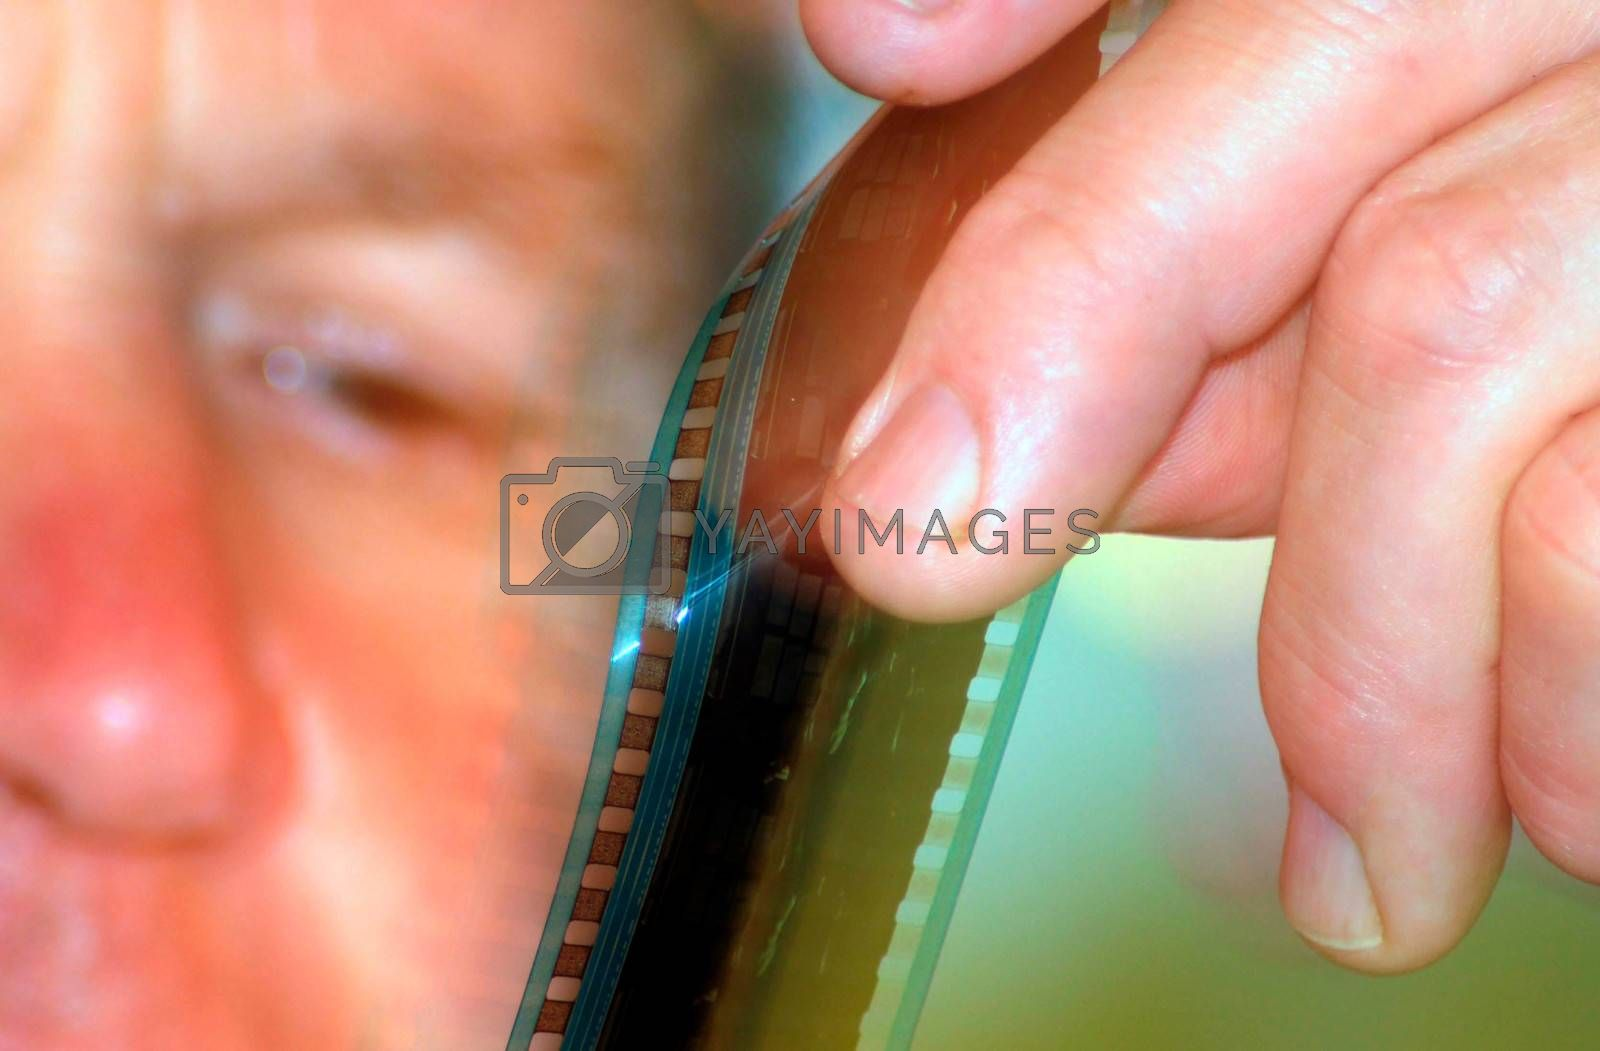 film projectionist in a cinema looking at a filmstrip in his hand